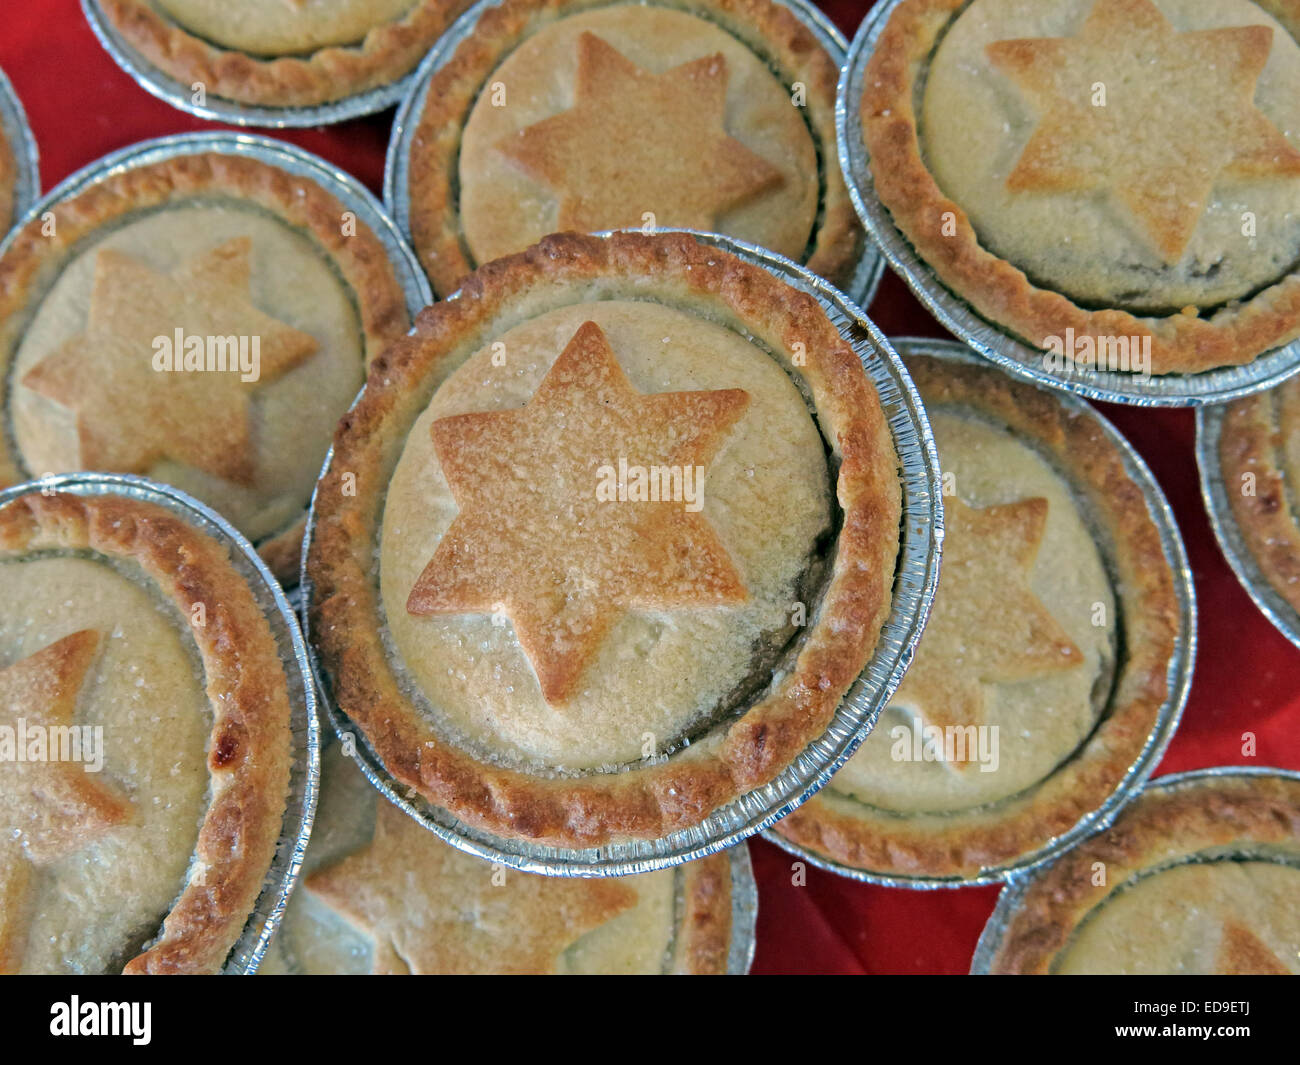 Sweet Mince Pies with Star of David in pastry at Xmas on a red table - Stock Image